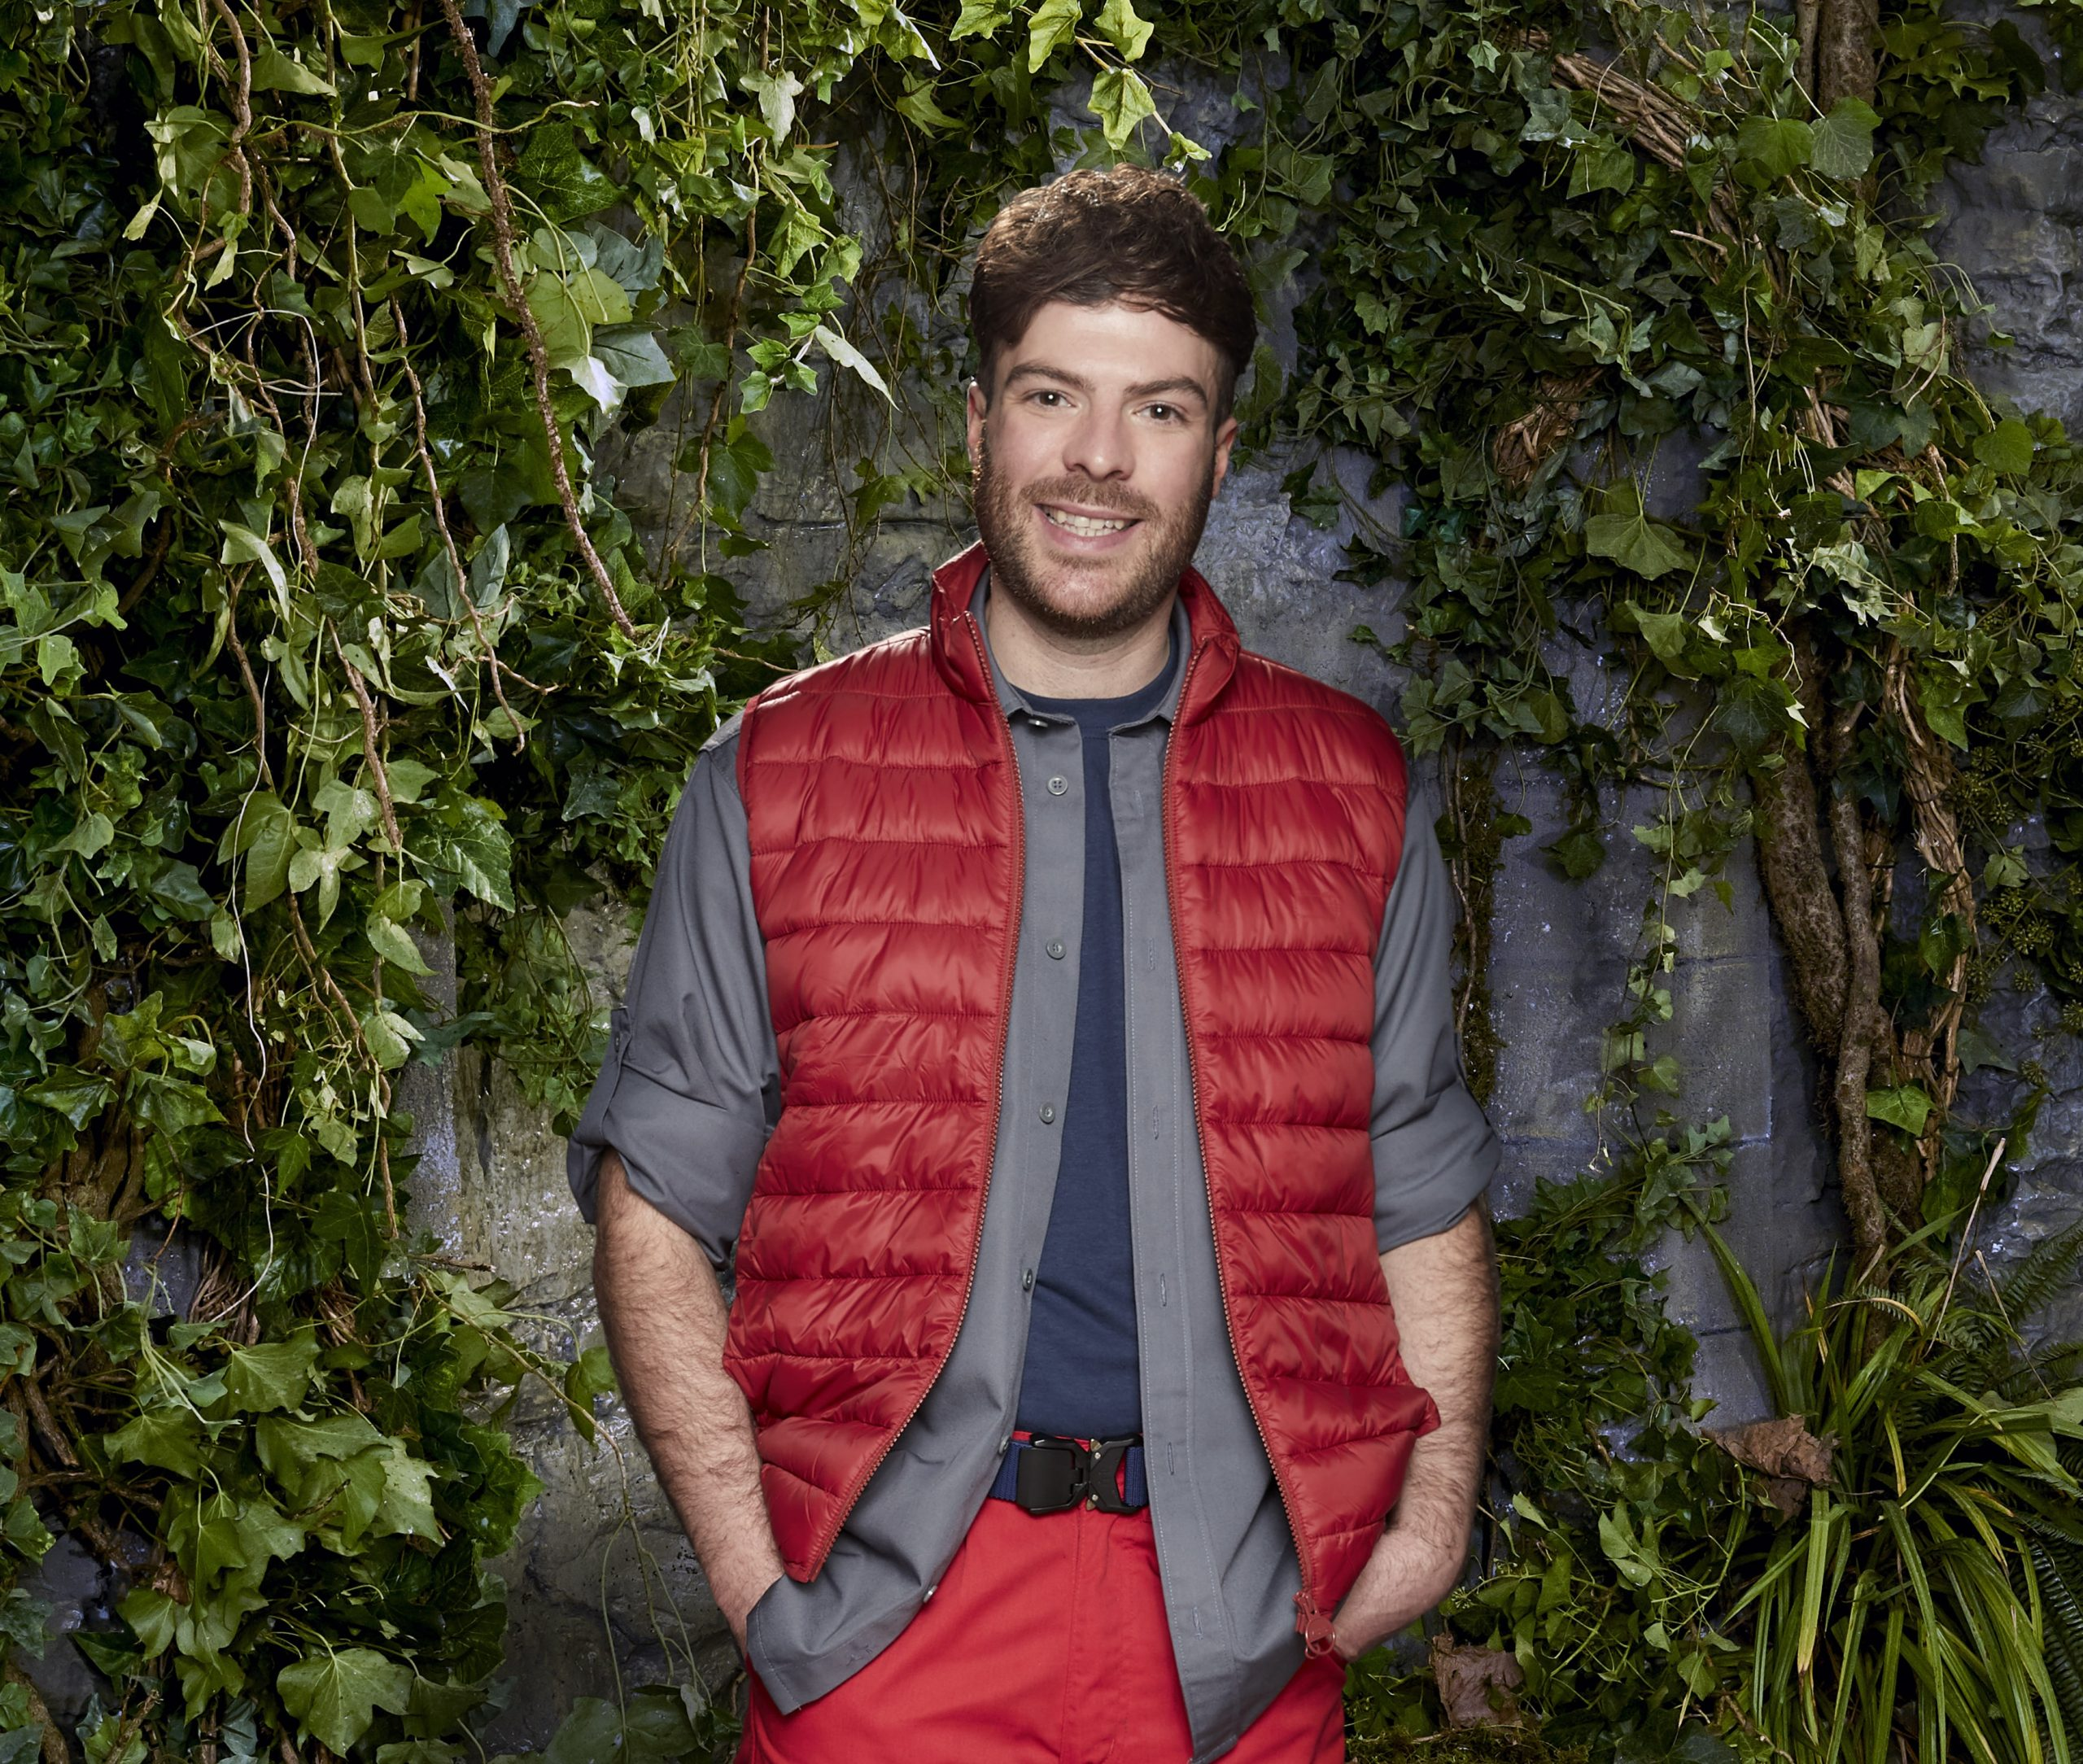 Jordan North to appear on I'm A Celebrity!